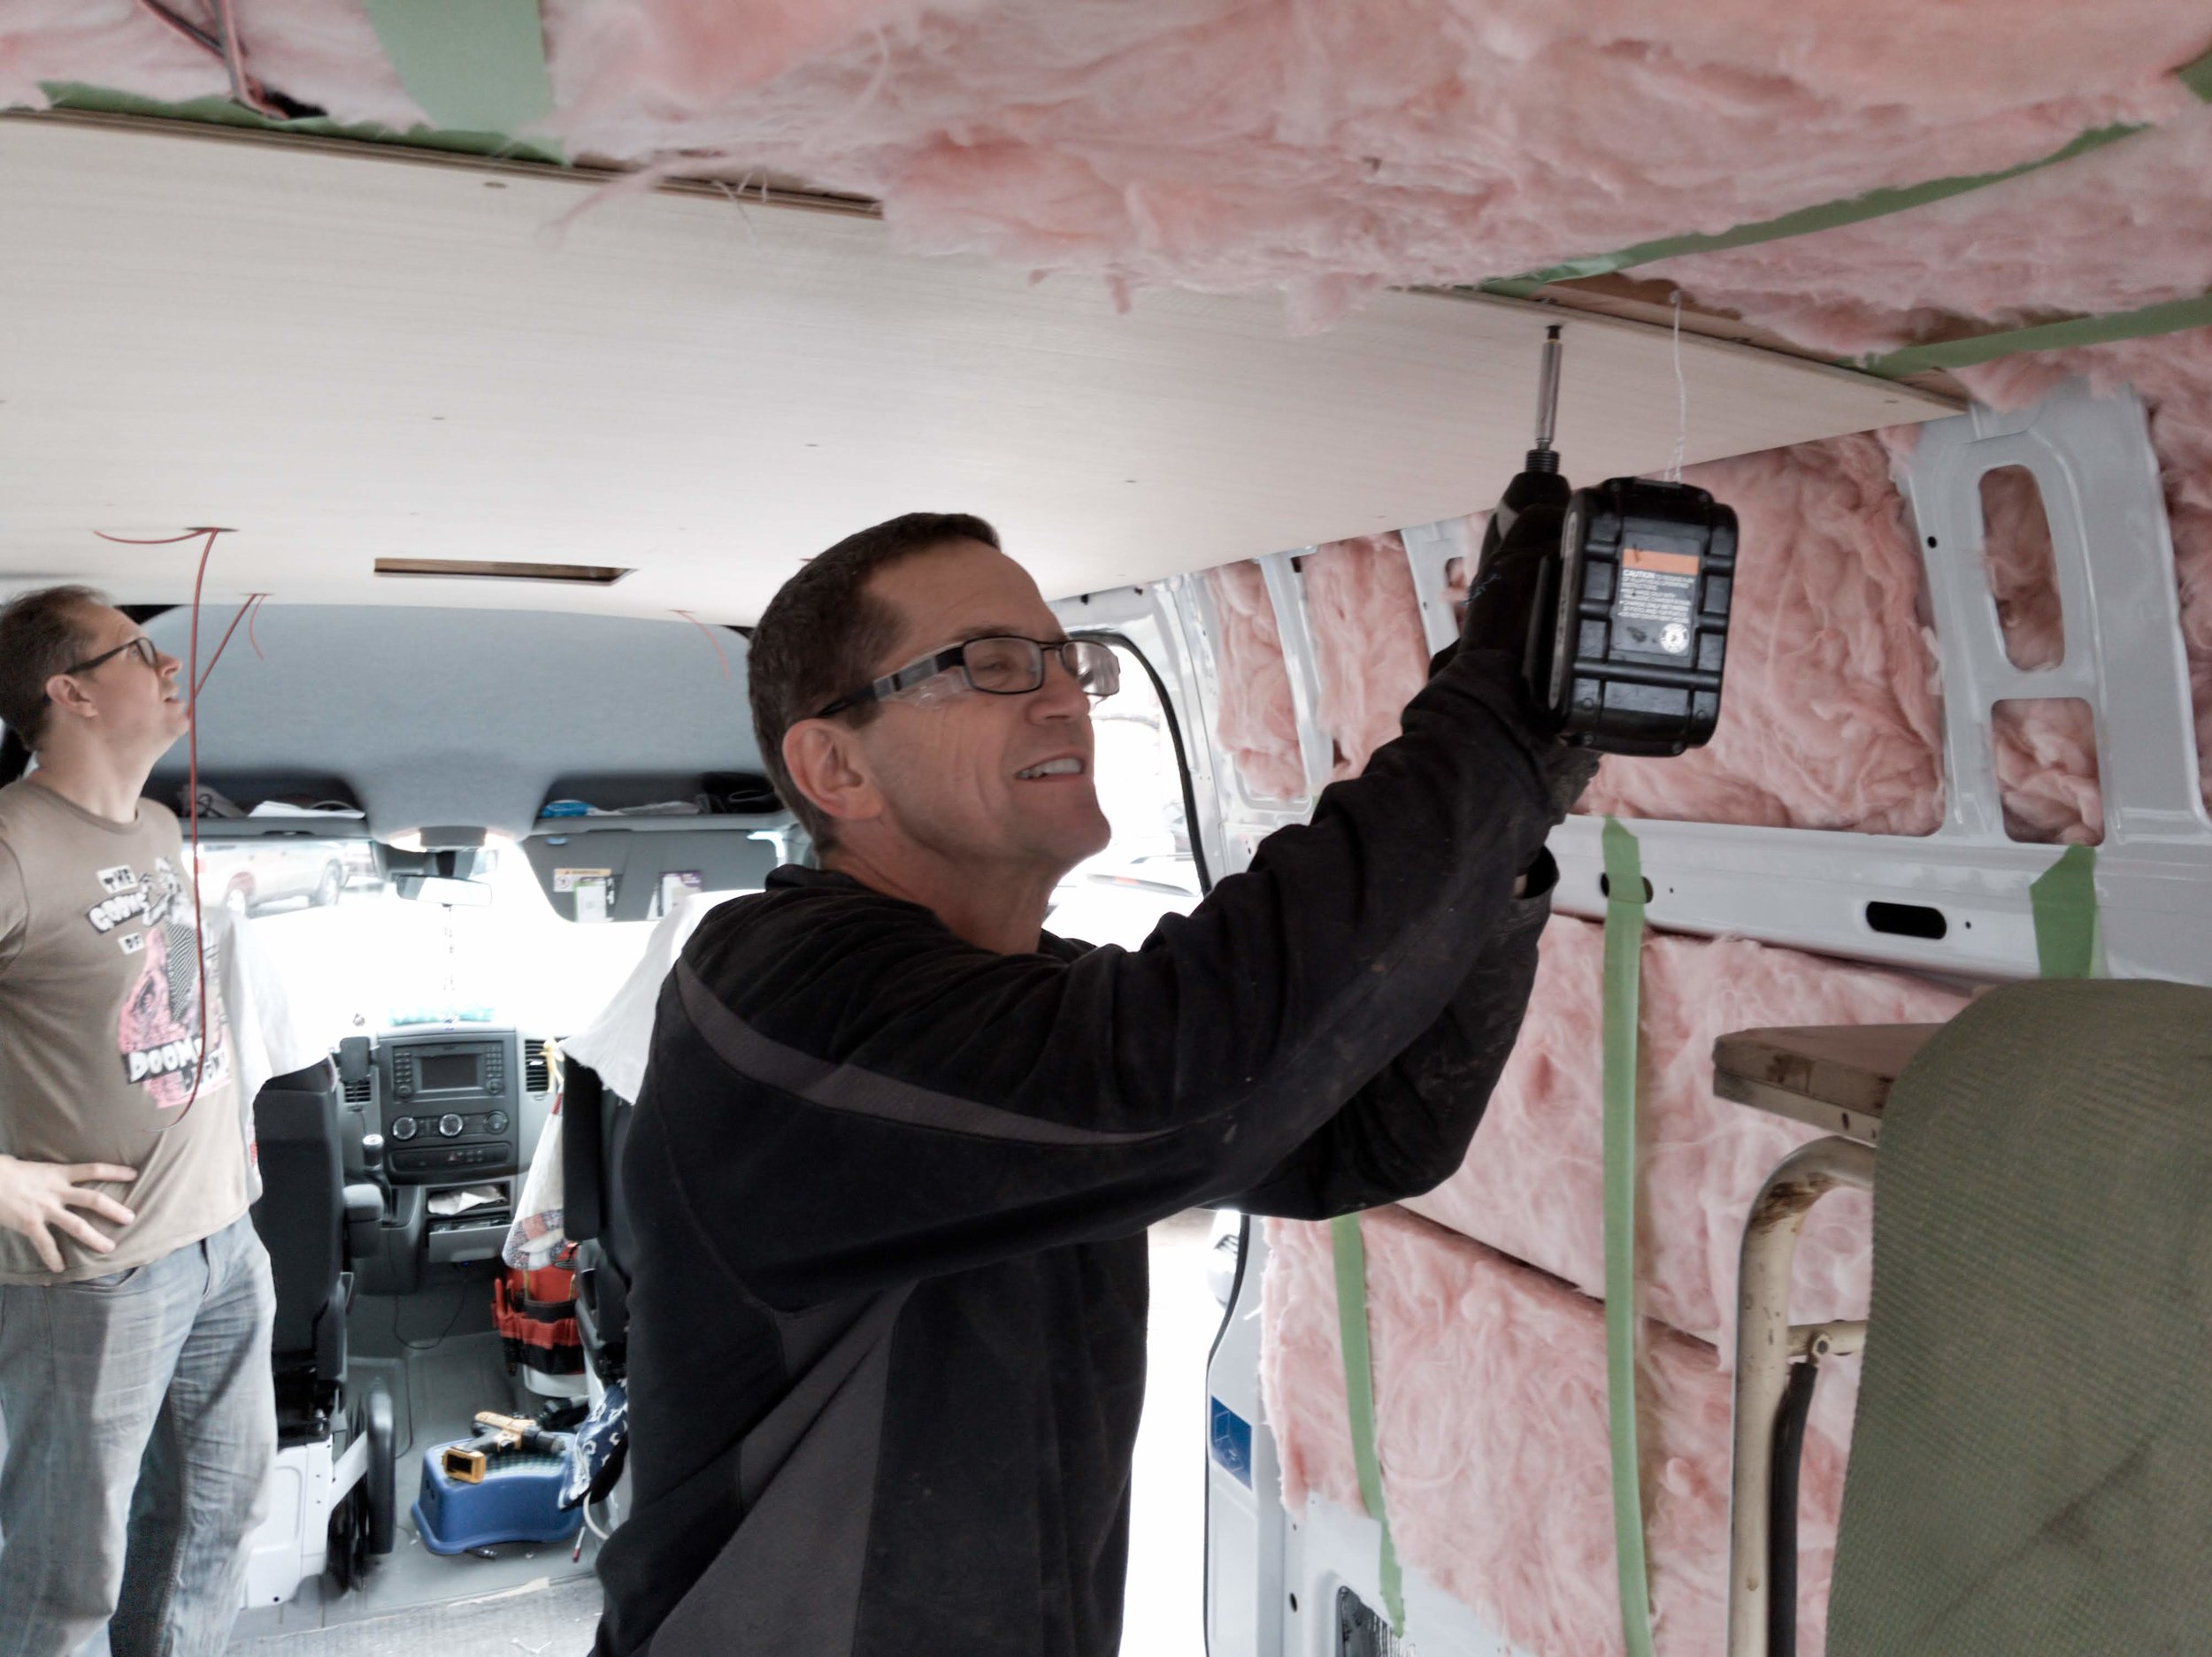 Screwing the ceiling panels in place